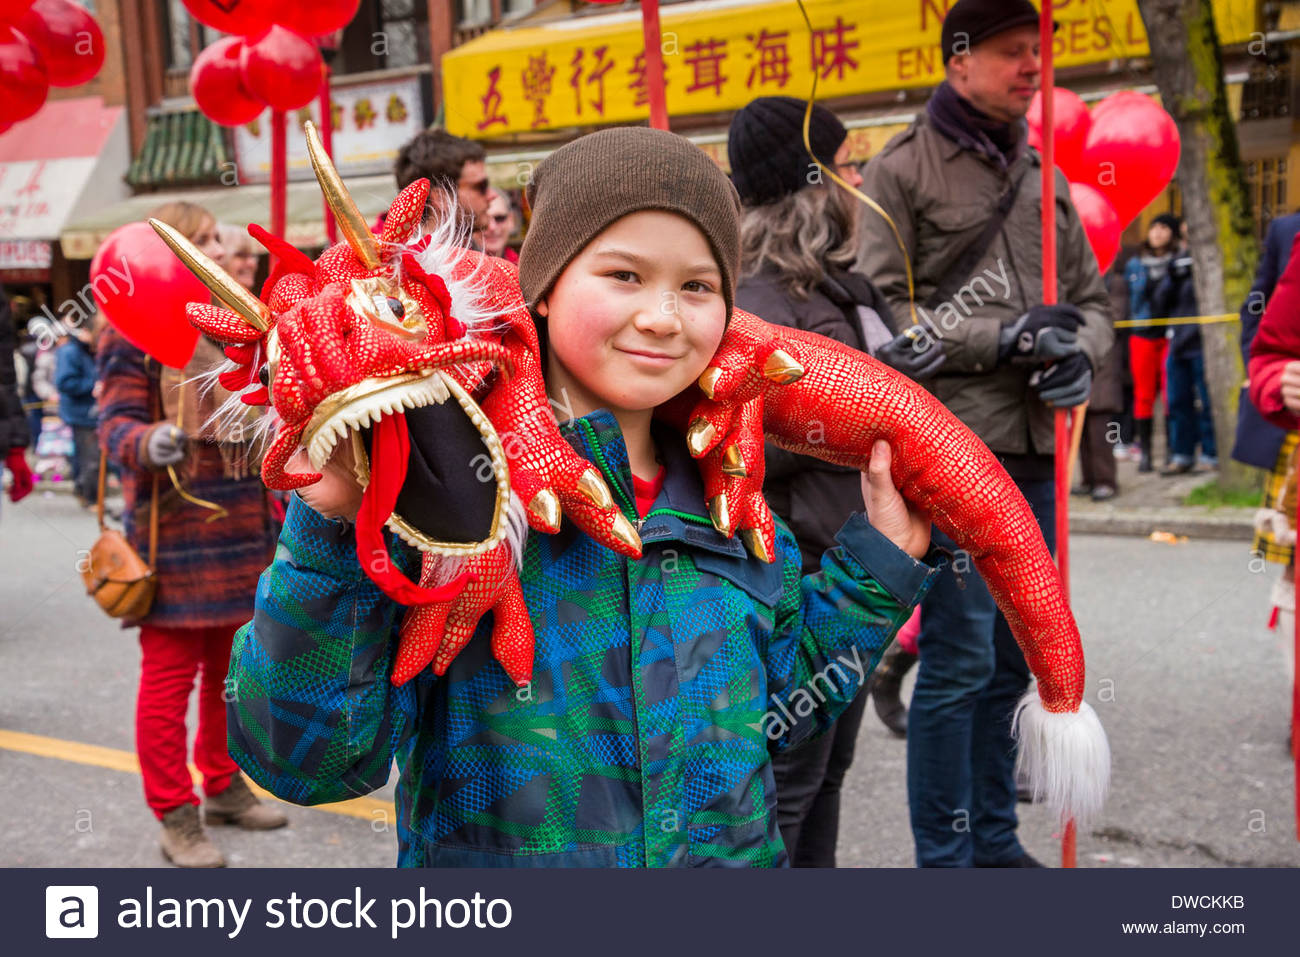 Boy with dragon toy, Chinese New Year Parade, Vancouver, British Columbia, Canada - Stock Image